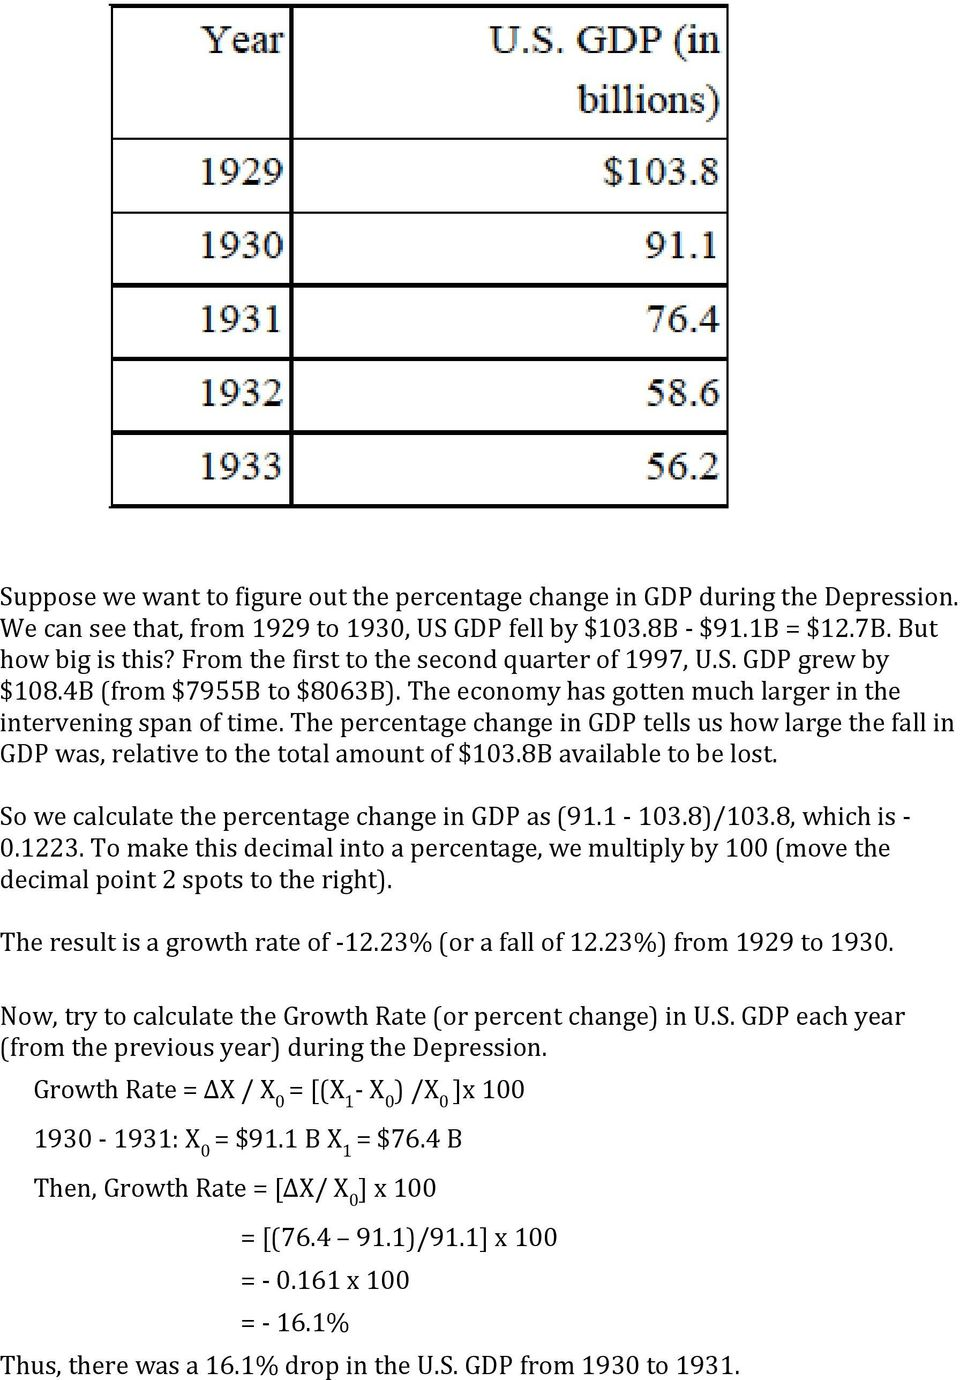 The percentage change in GDP tells us how large the fall in GDP was, relative to the total amount of $103.8B available to be lost. So we calculate the percentage change in GDP as (91.1-103.8)/103.